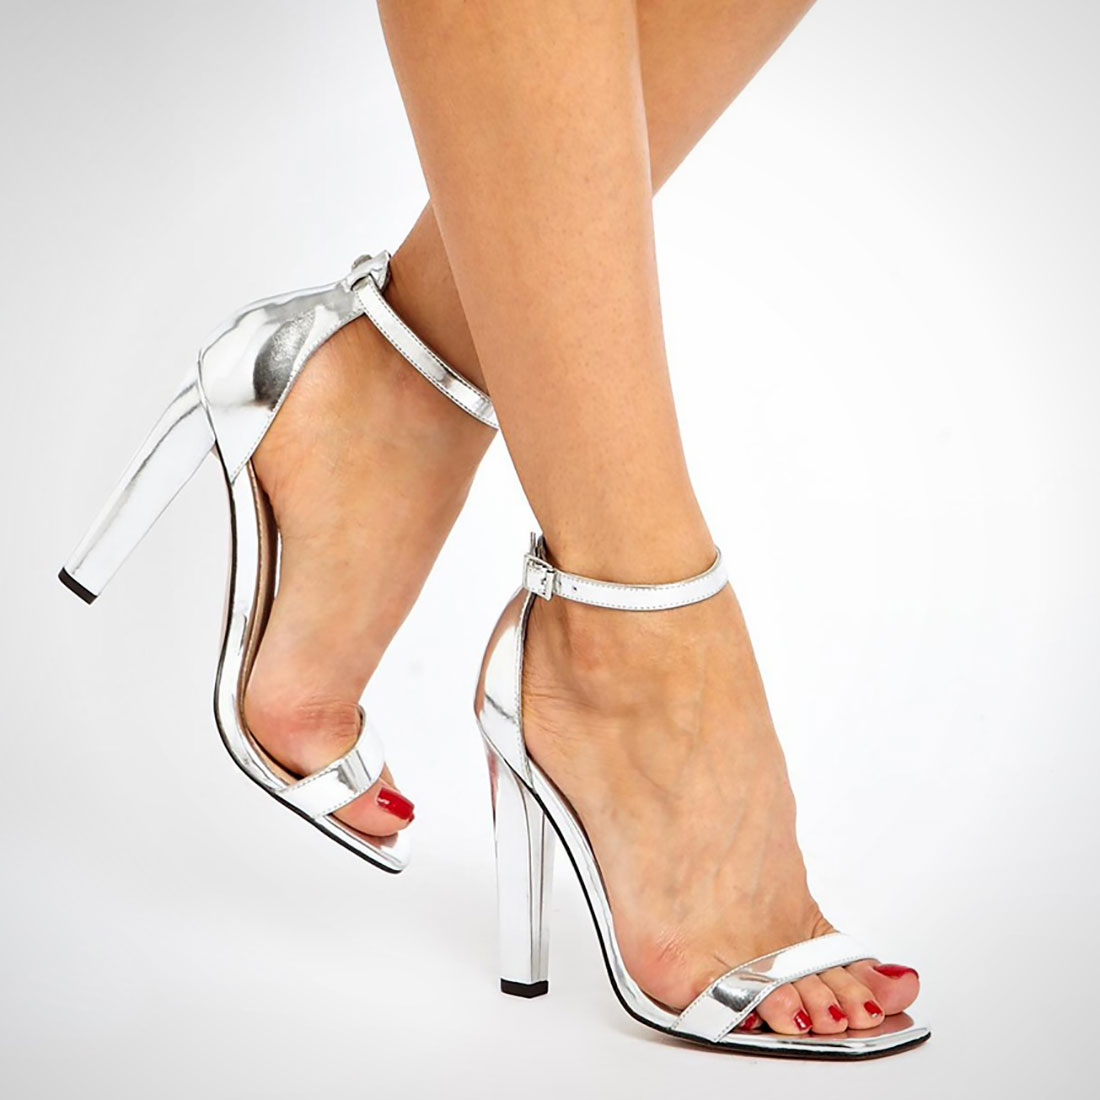 Black And Silver Strappy Heels - Qu Heel